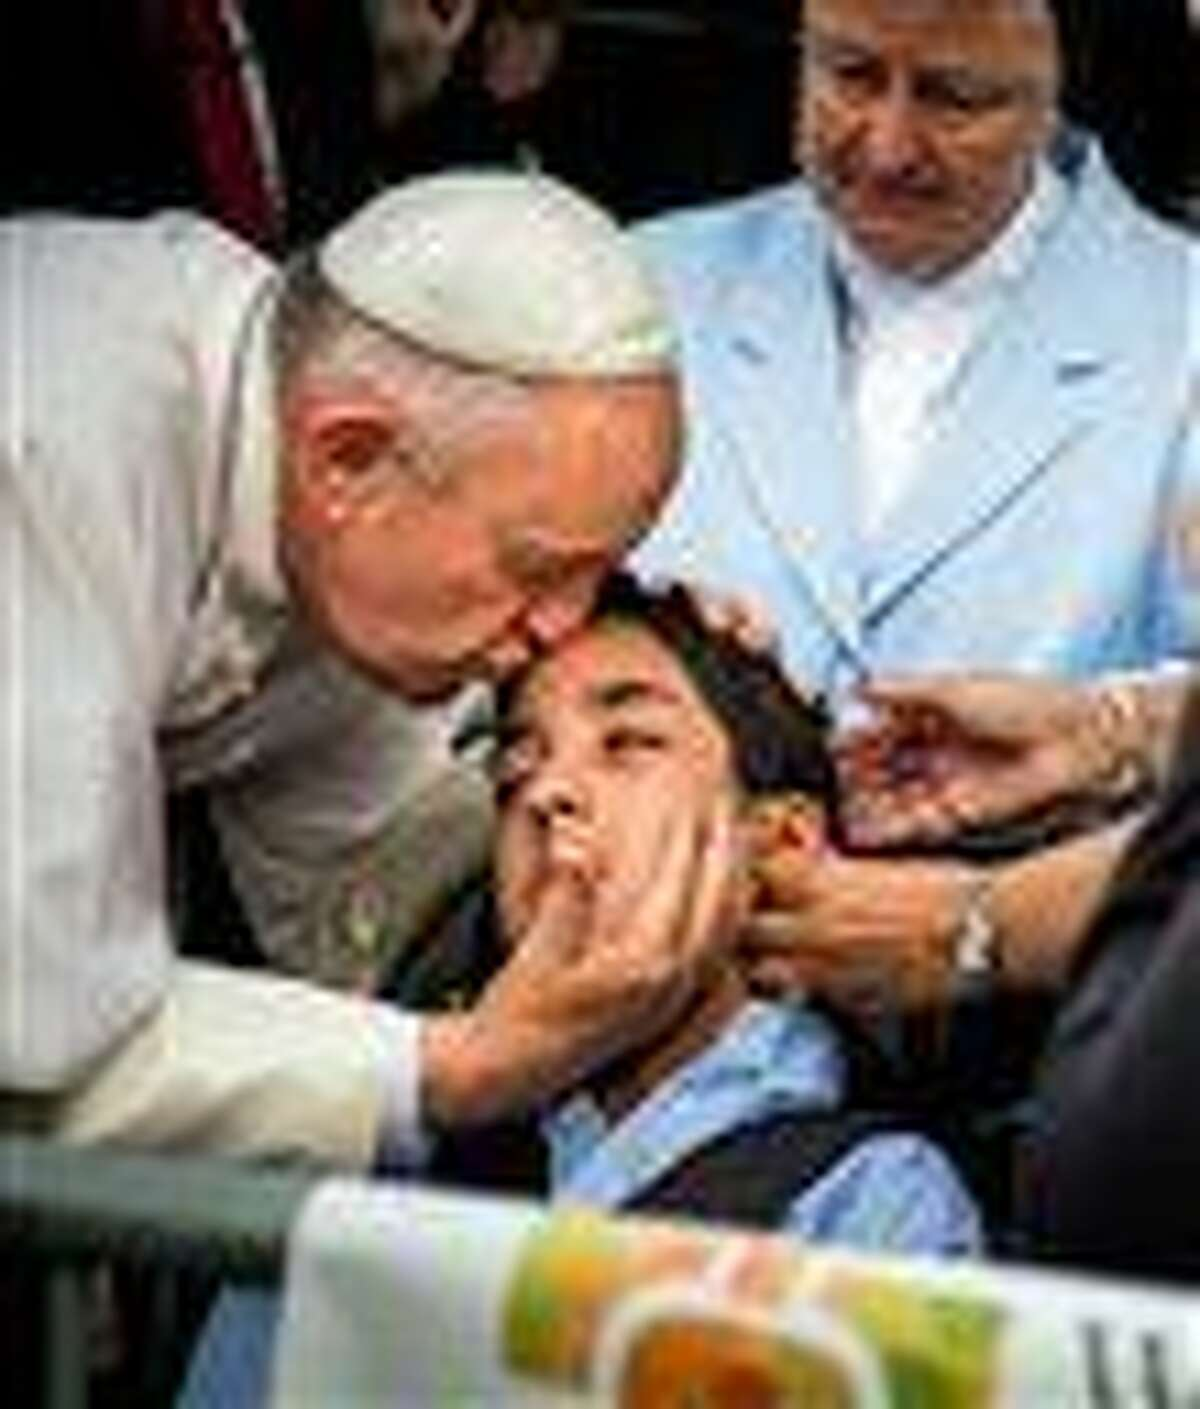 In this photo provided by World Meeting of Families, Pope Francis kisses and blesses Michael Keating, 10, of Elverson, Pa after arriving in Philadelphia and exiting his car when he saw the boy, Saturday, Sept. 26, 2015, at Philadelphia International Airport. Keating has cerebral palsy and is the son of Chuck Keating, director of the Bishop Shanahan High School band that performed at Pope Francis' airport arrival. (Joseph Gidjunis/World Meeting of Families via AP) MANDATORY CREDIT